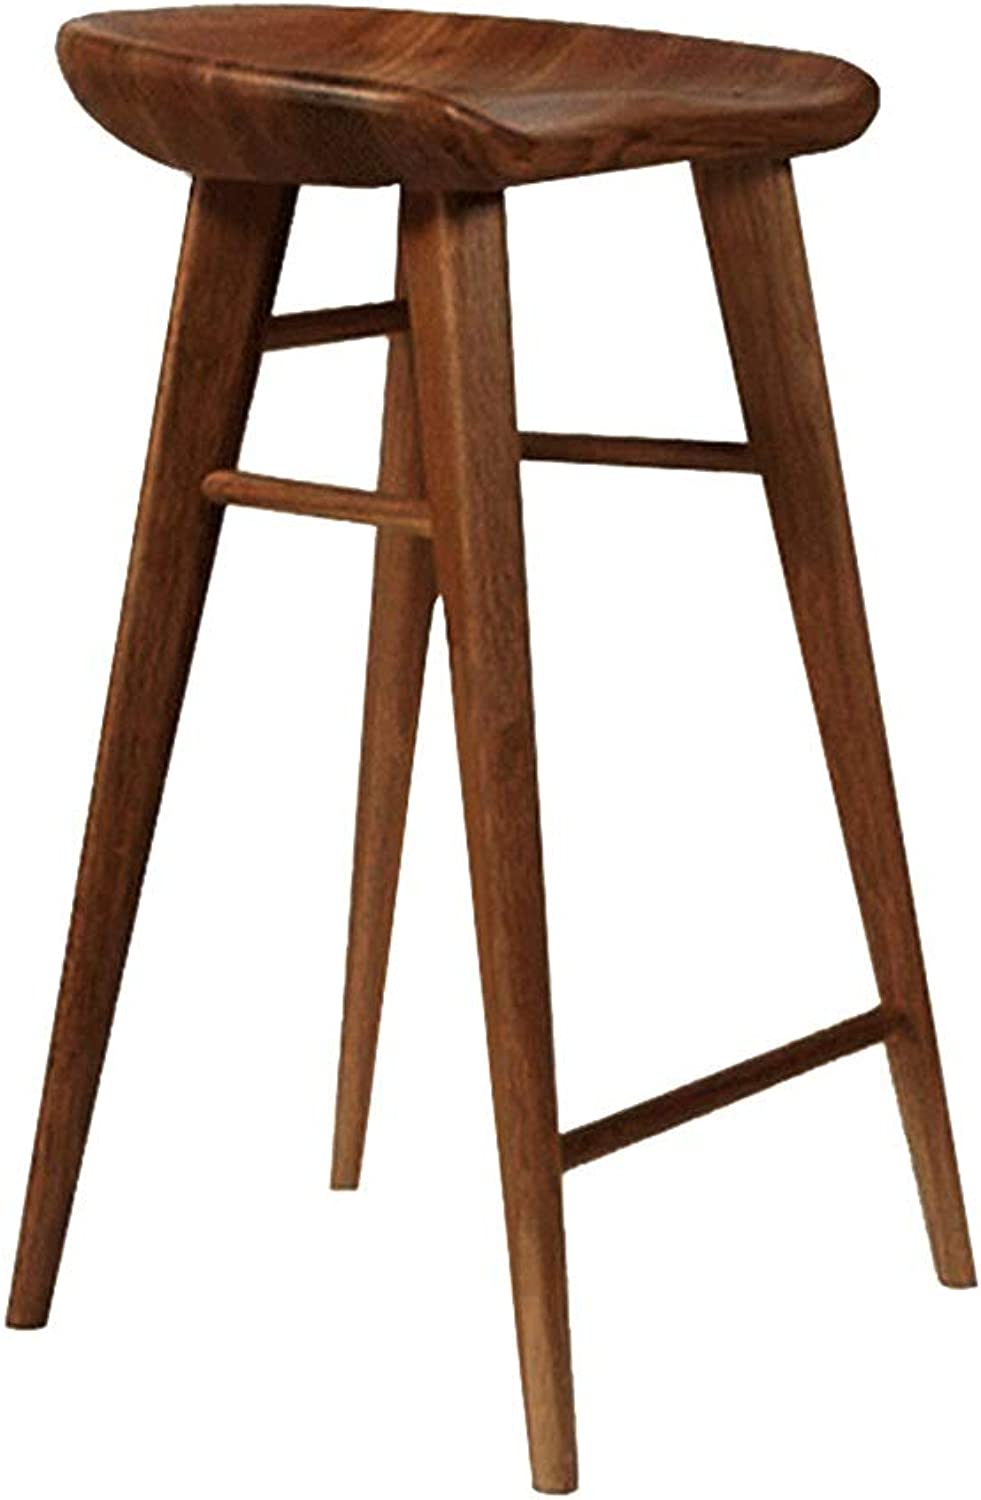 Bar Stool, Solid Wood Bar Stool Chair Dining Chair Home Simple Leisure High Stool Stool Front Desk Chair Study Chair (color   Walnut, Size   55 cm high)